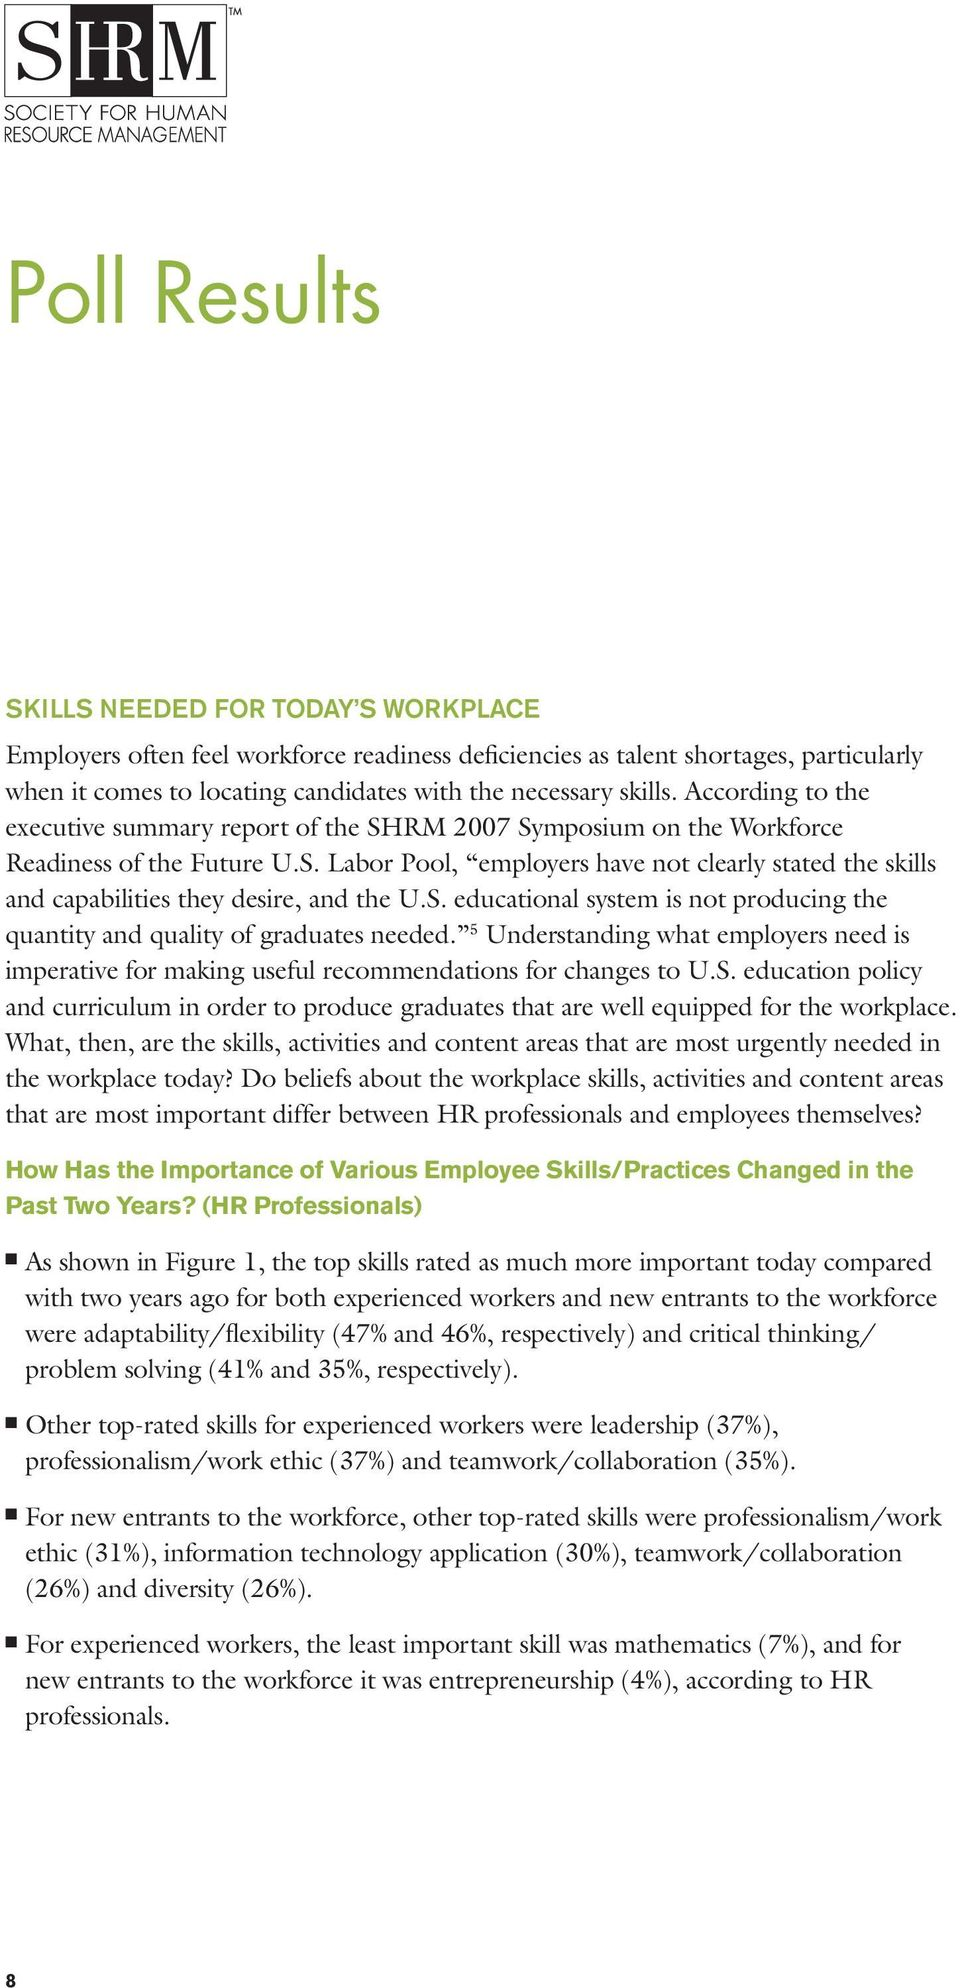 S. educational system is not producing the quan tity and quality of graduates needed. 5 Understanding what employers need is imperative for making useful recommendations for changes to U.S. education policy and curriculum in order to produce graduates that are well equipped for the workplace.